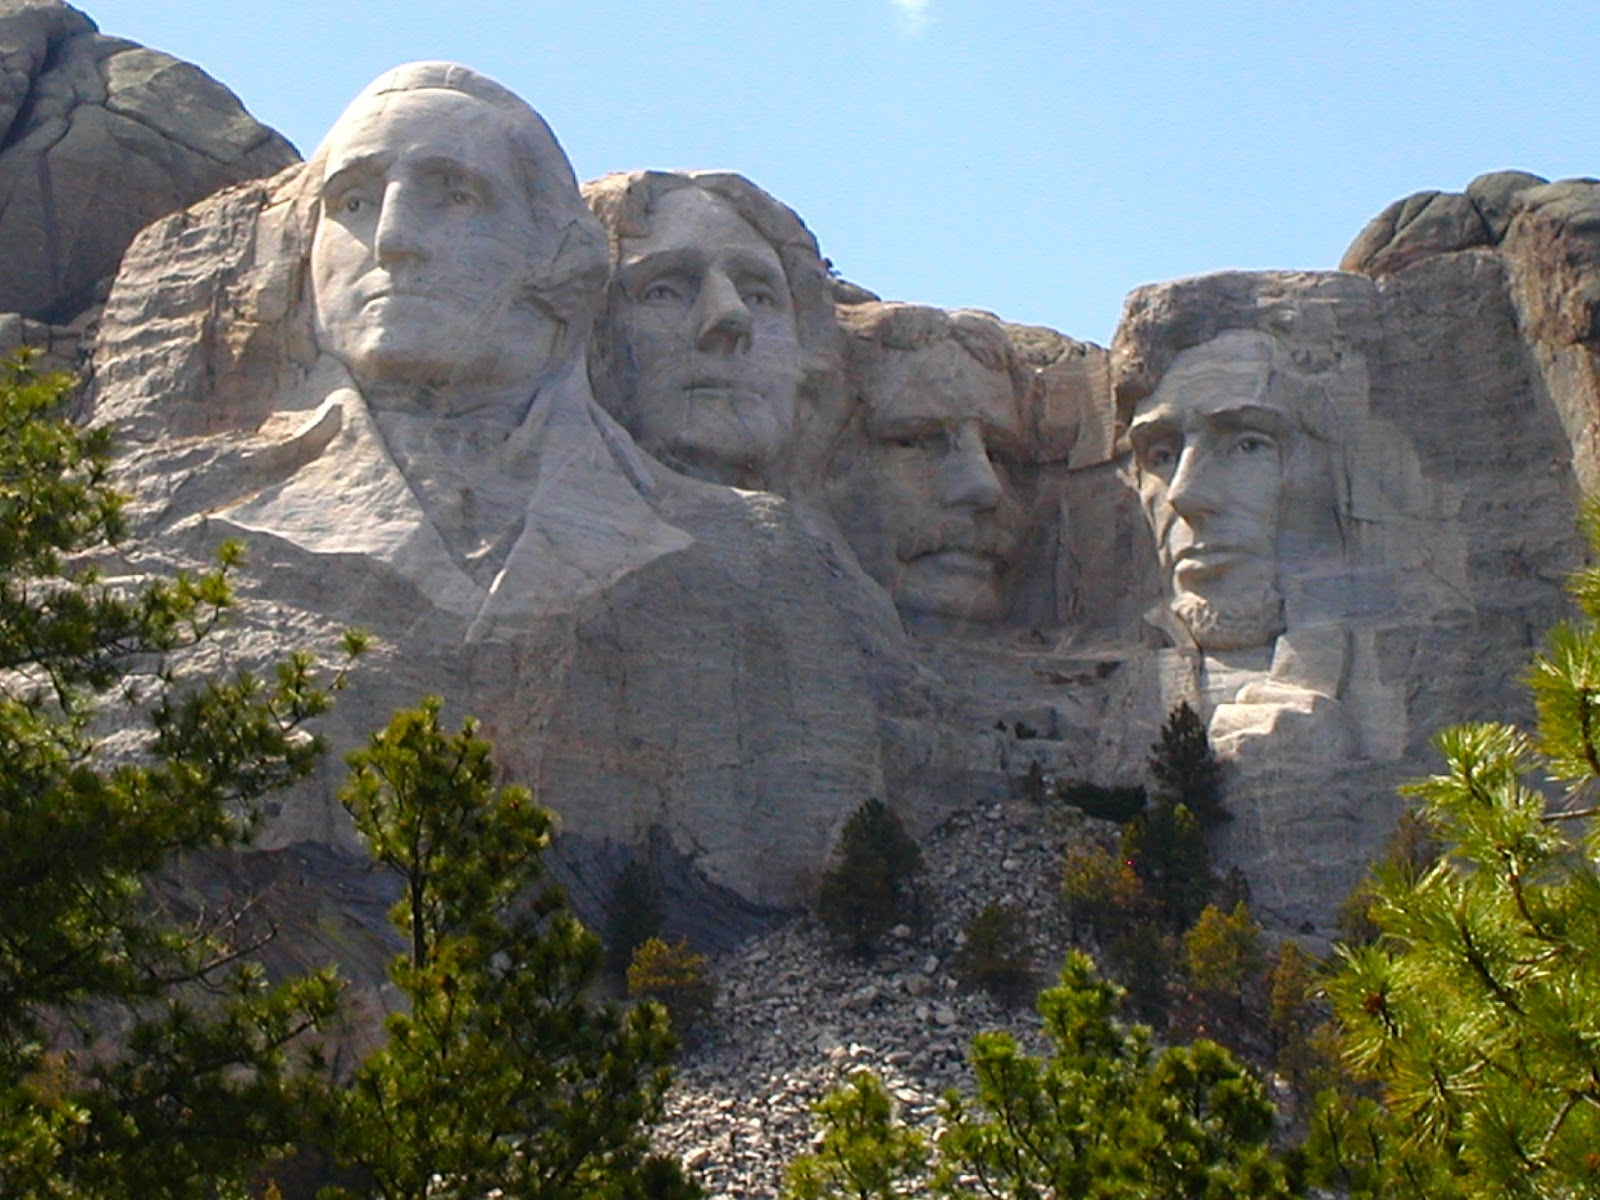 Earthscienceguy Minnesota Geology Monday Mount Rushmore